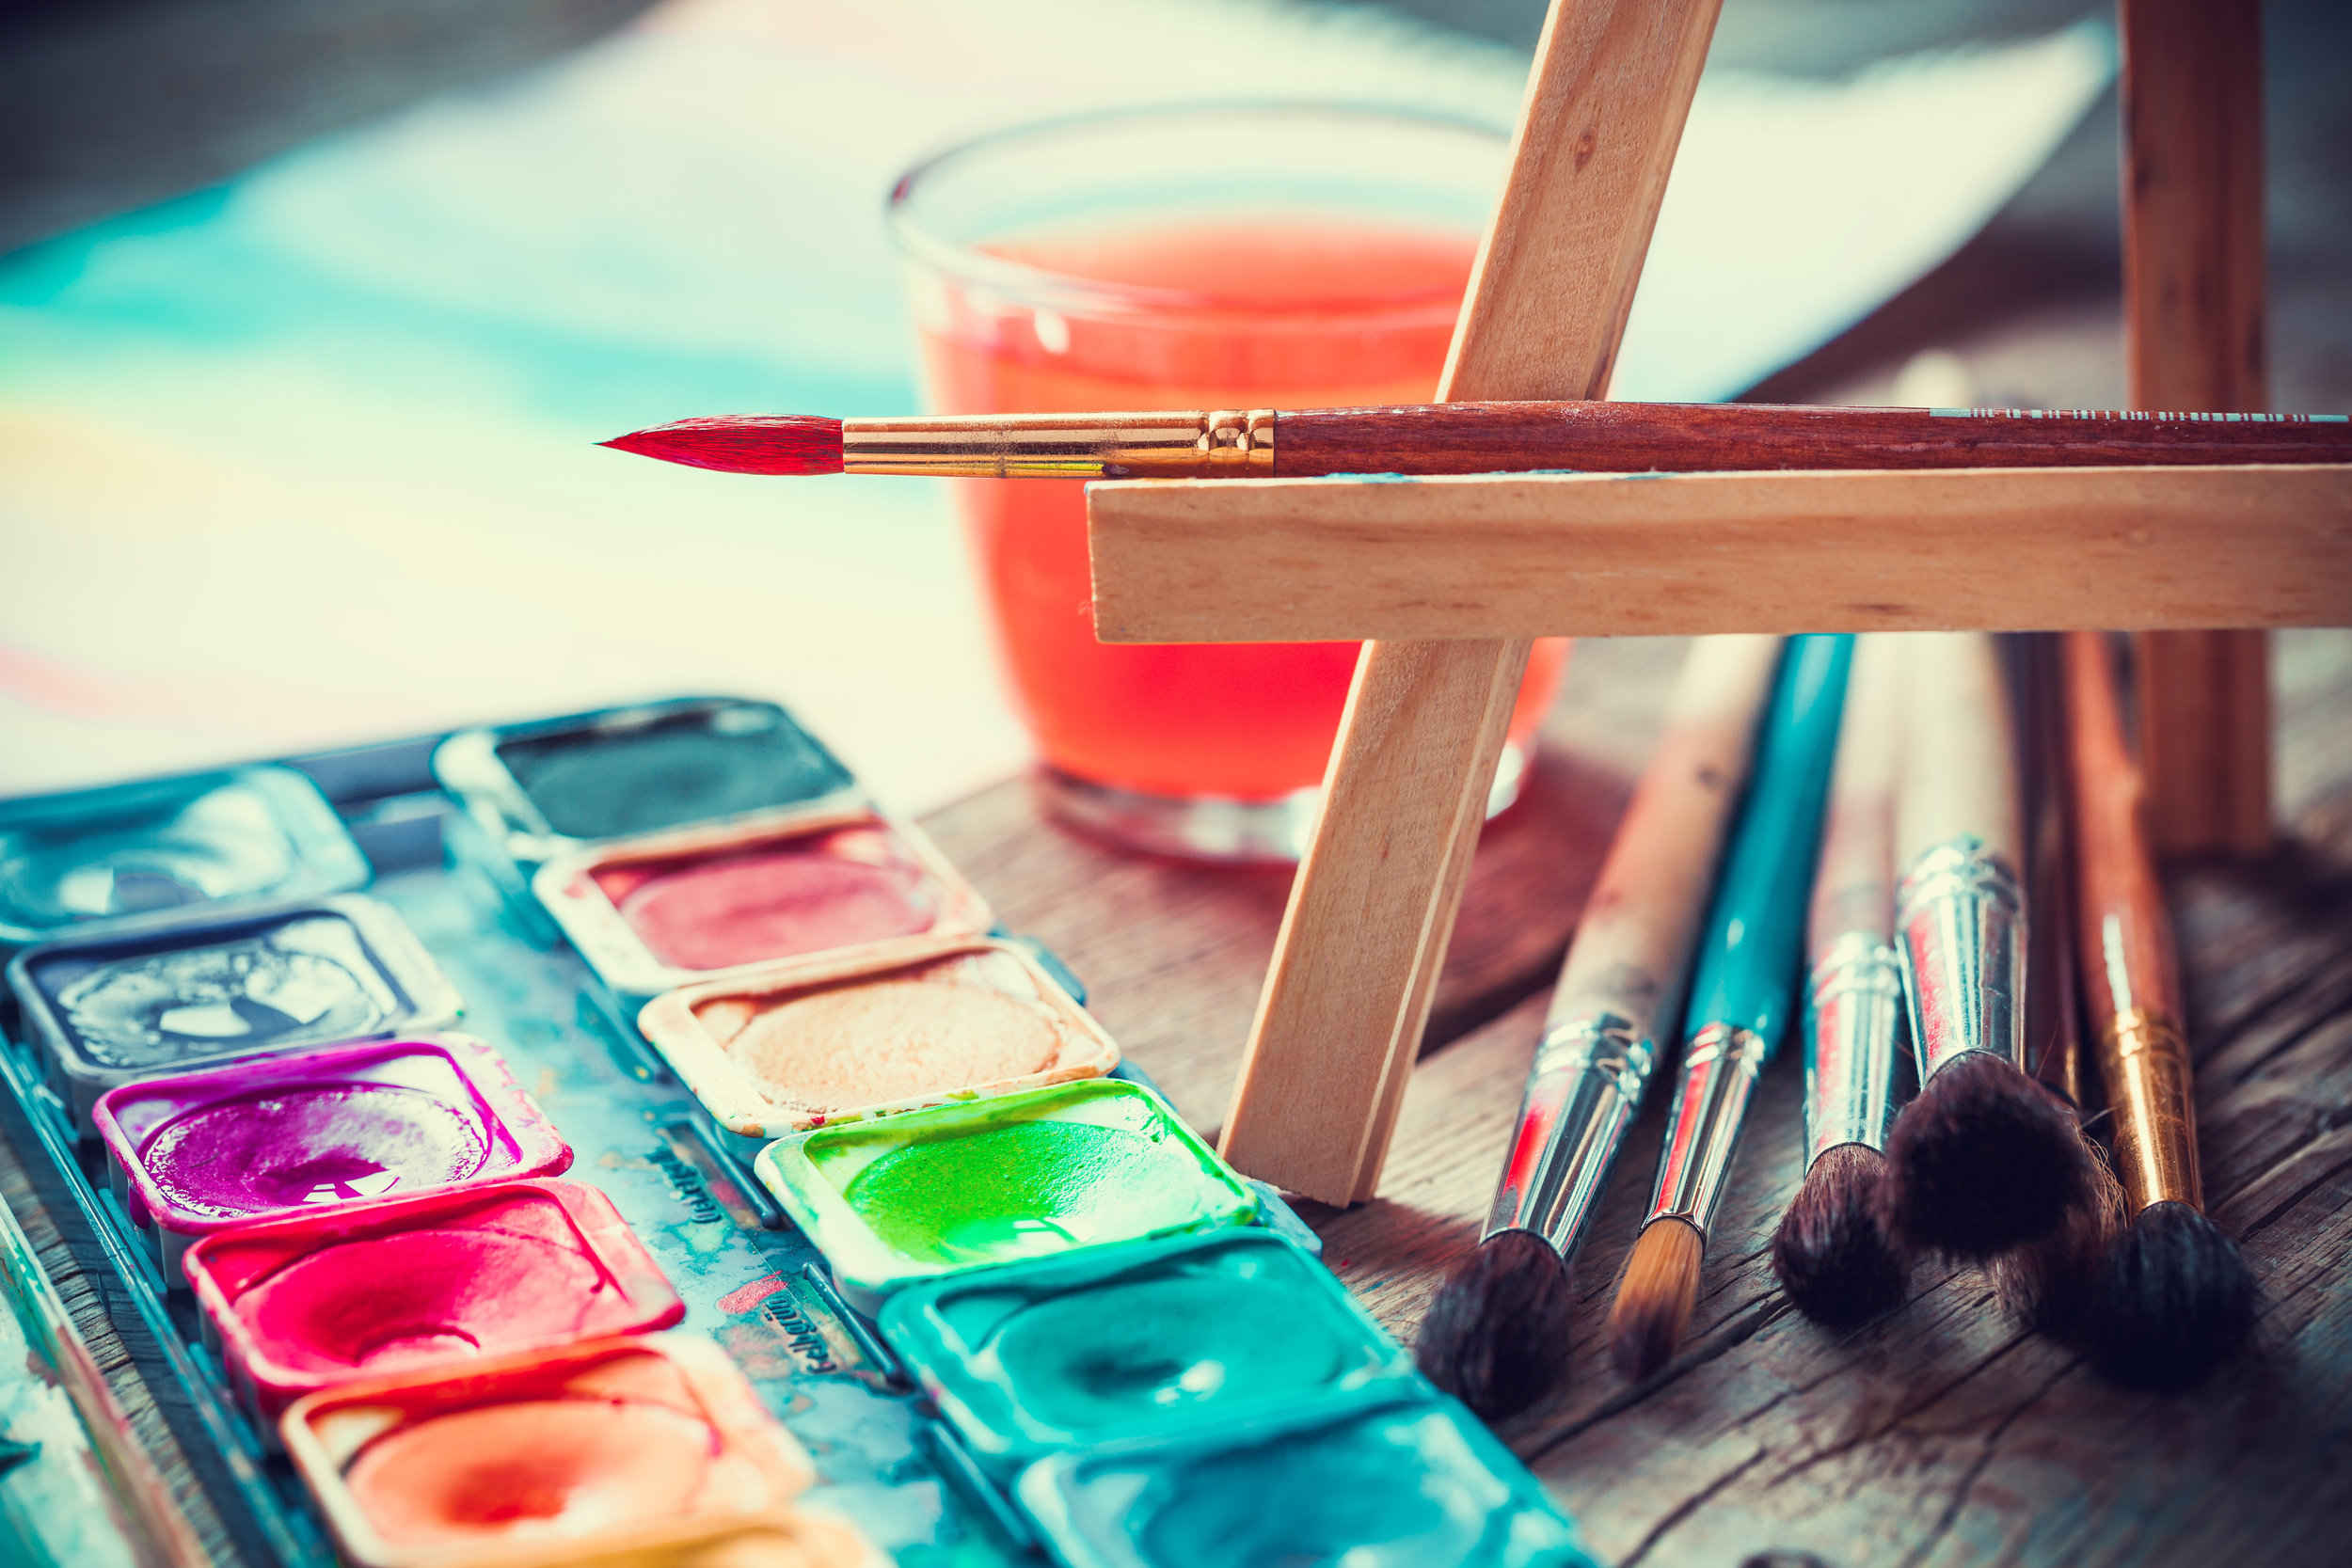 Watercolor_palette_brushes.jpeg